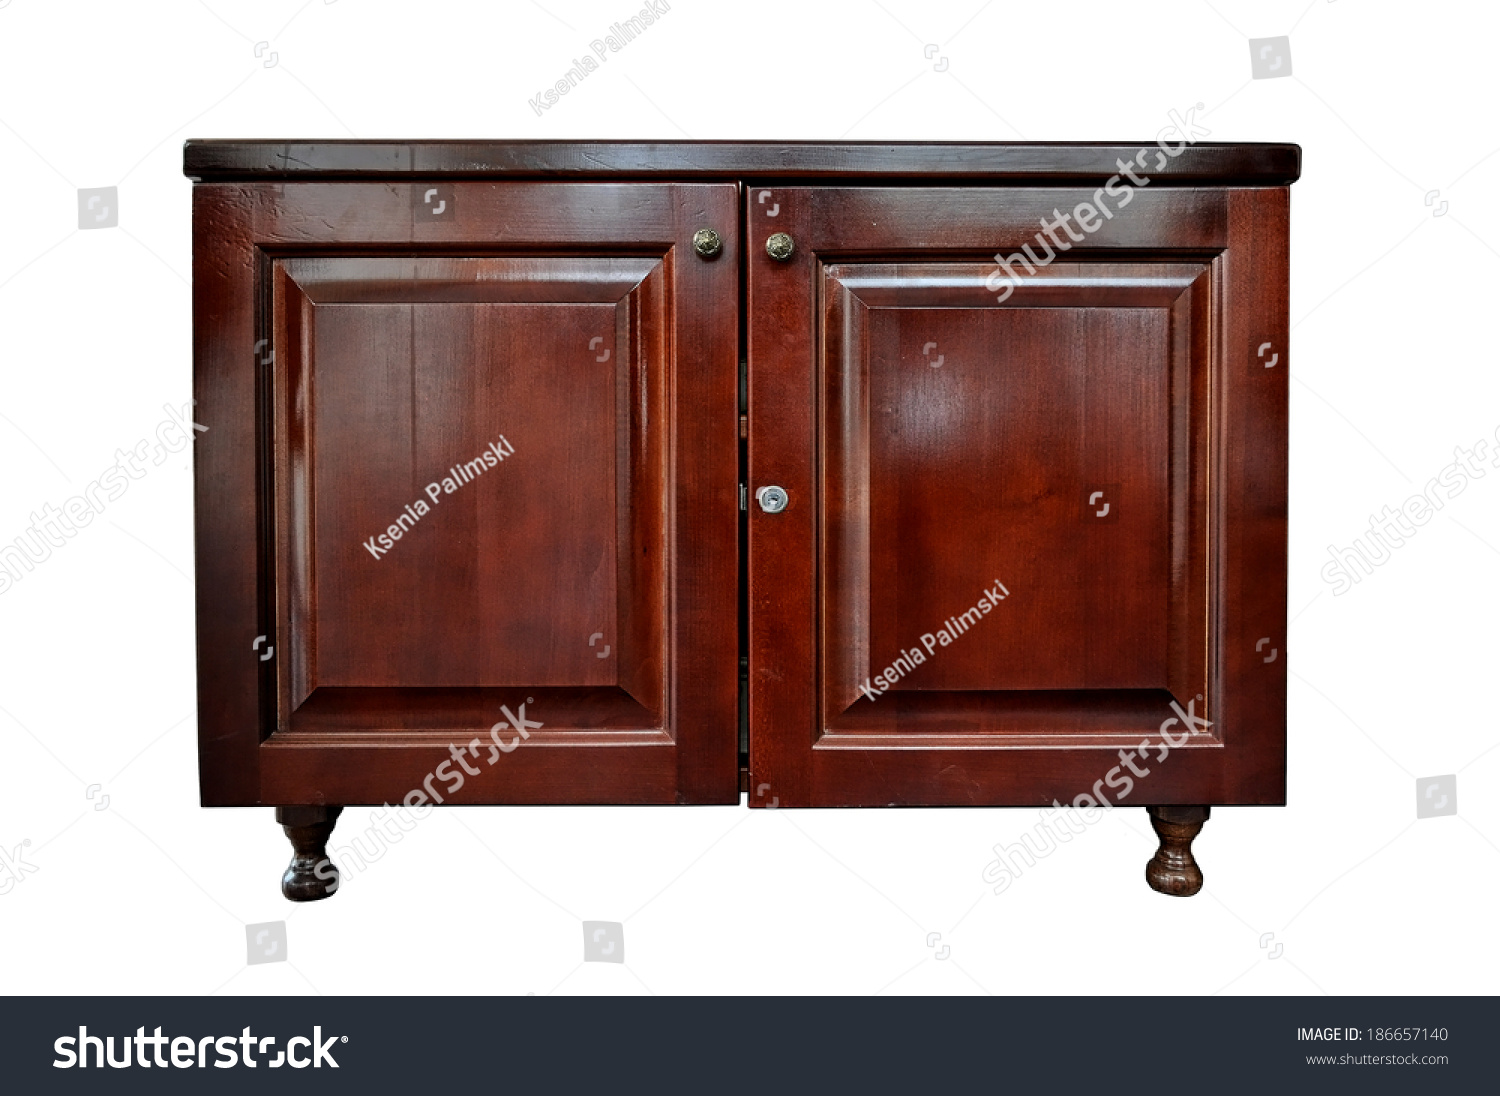 This Photo Wooden Locker Cabinet Isolated Stock Photo 186657140 Shutterstock